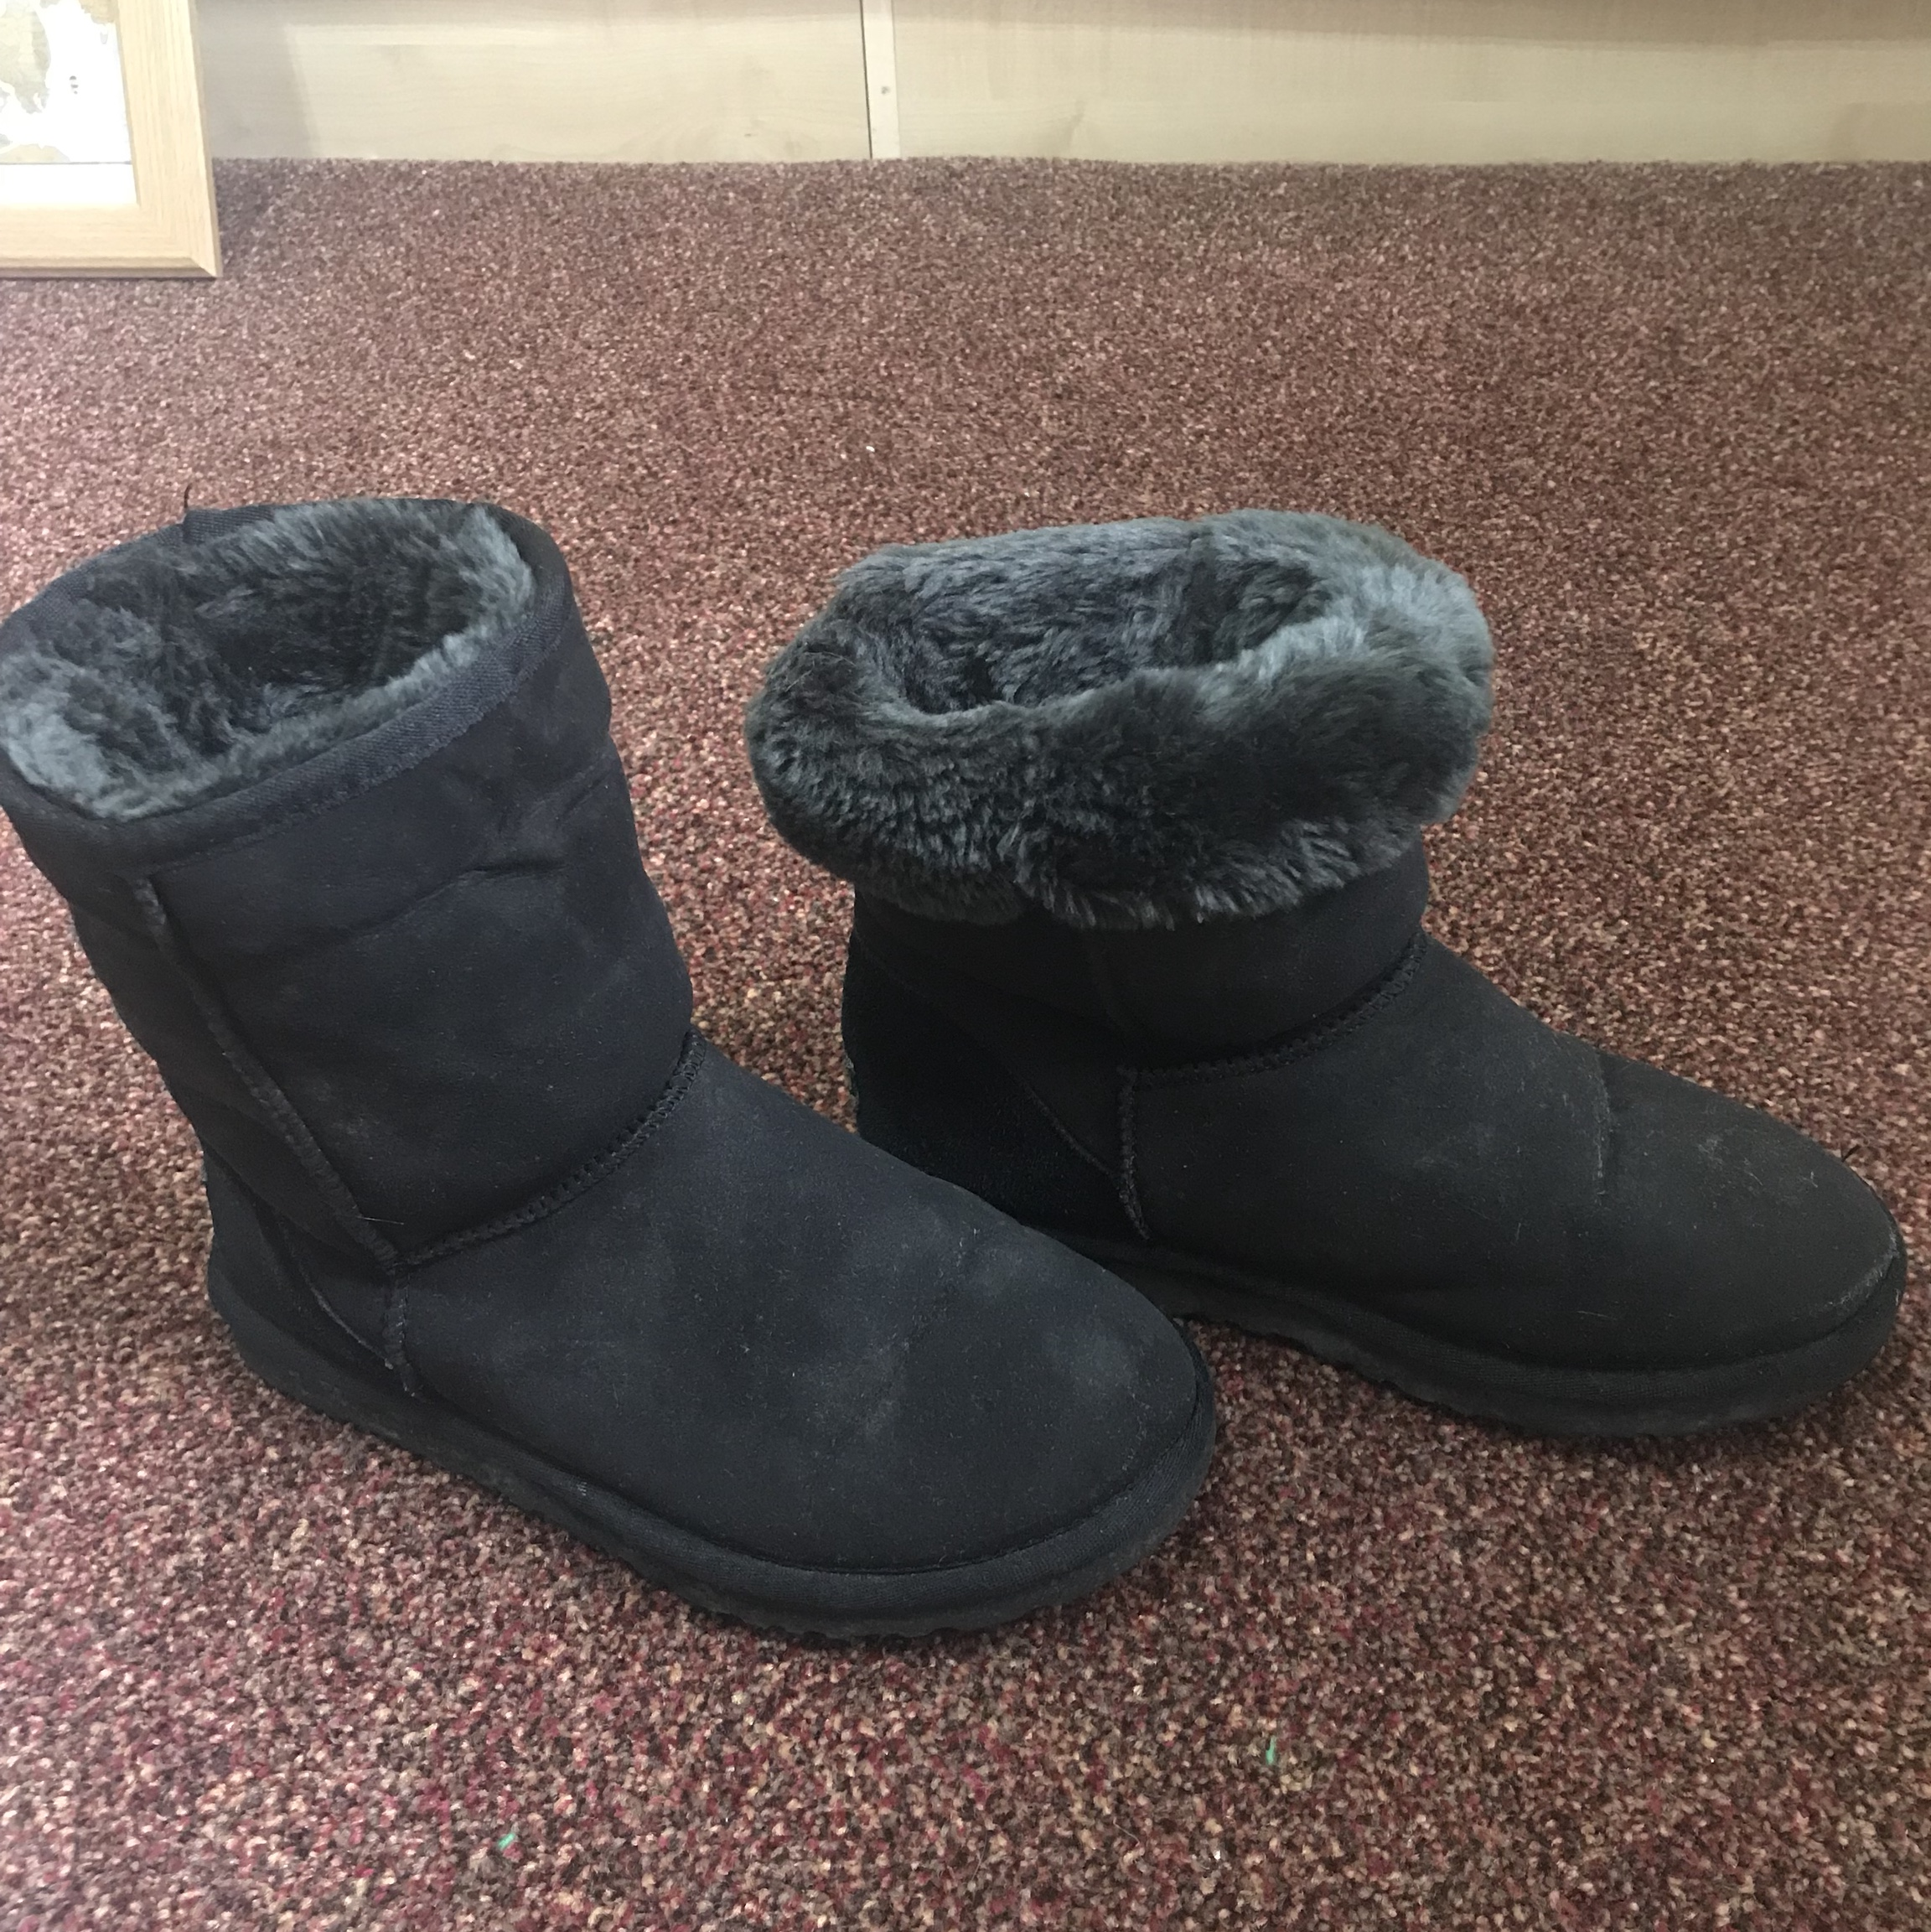 Used ugg boots size 'W6' but too small